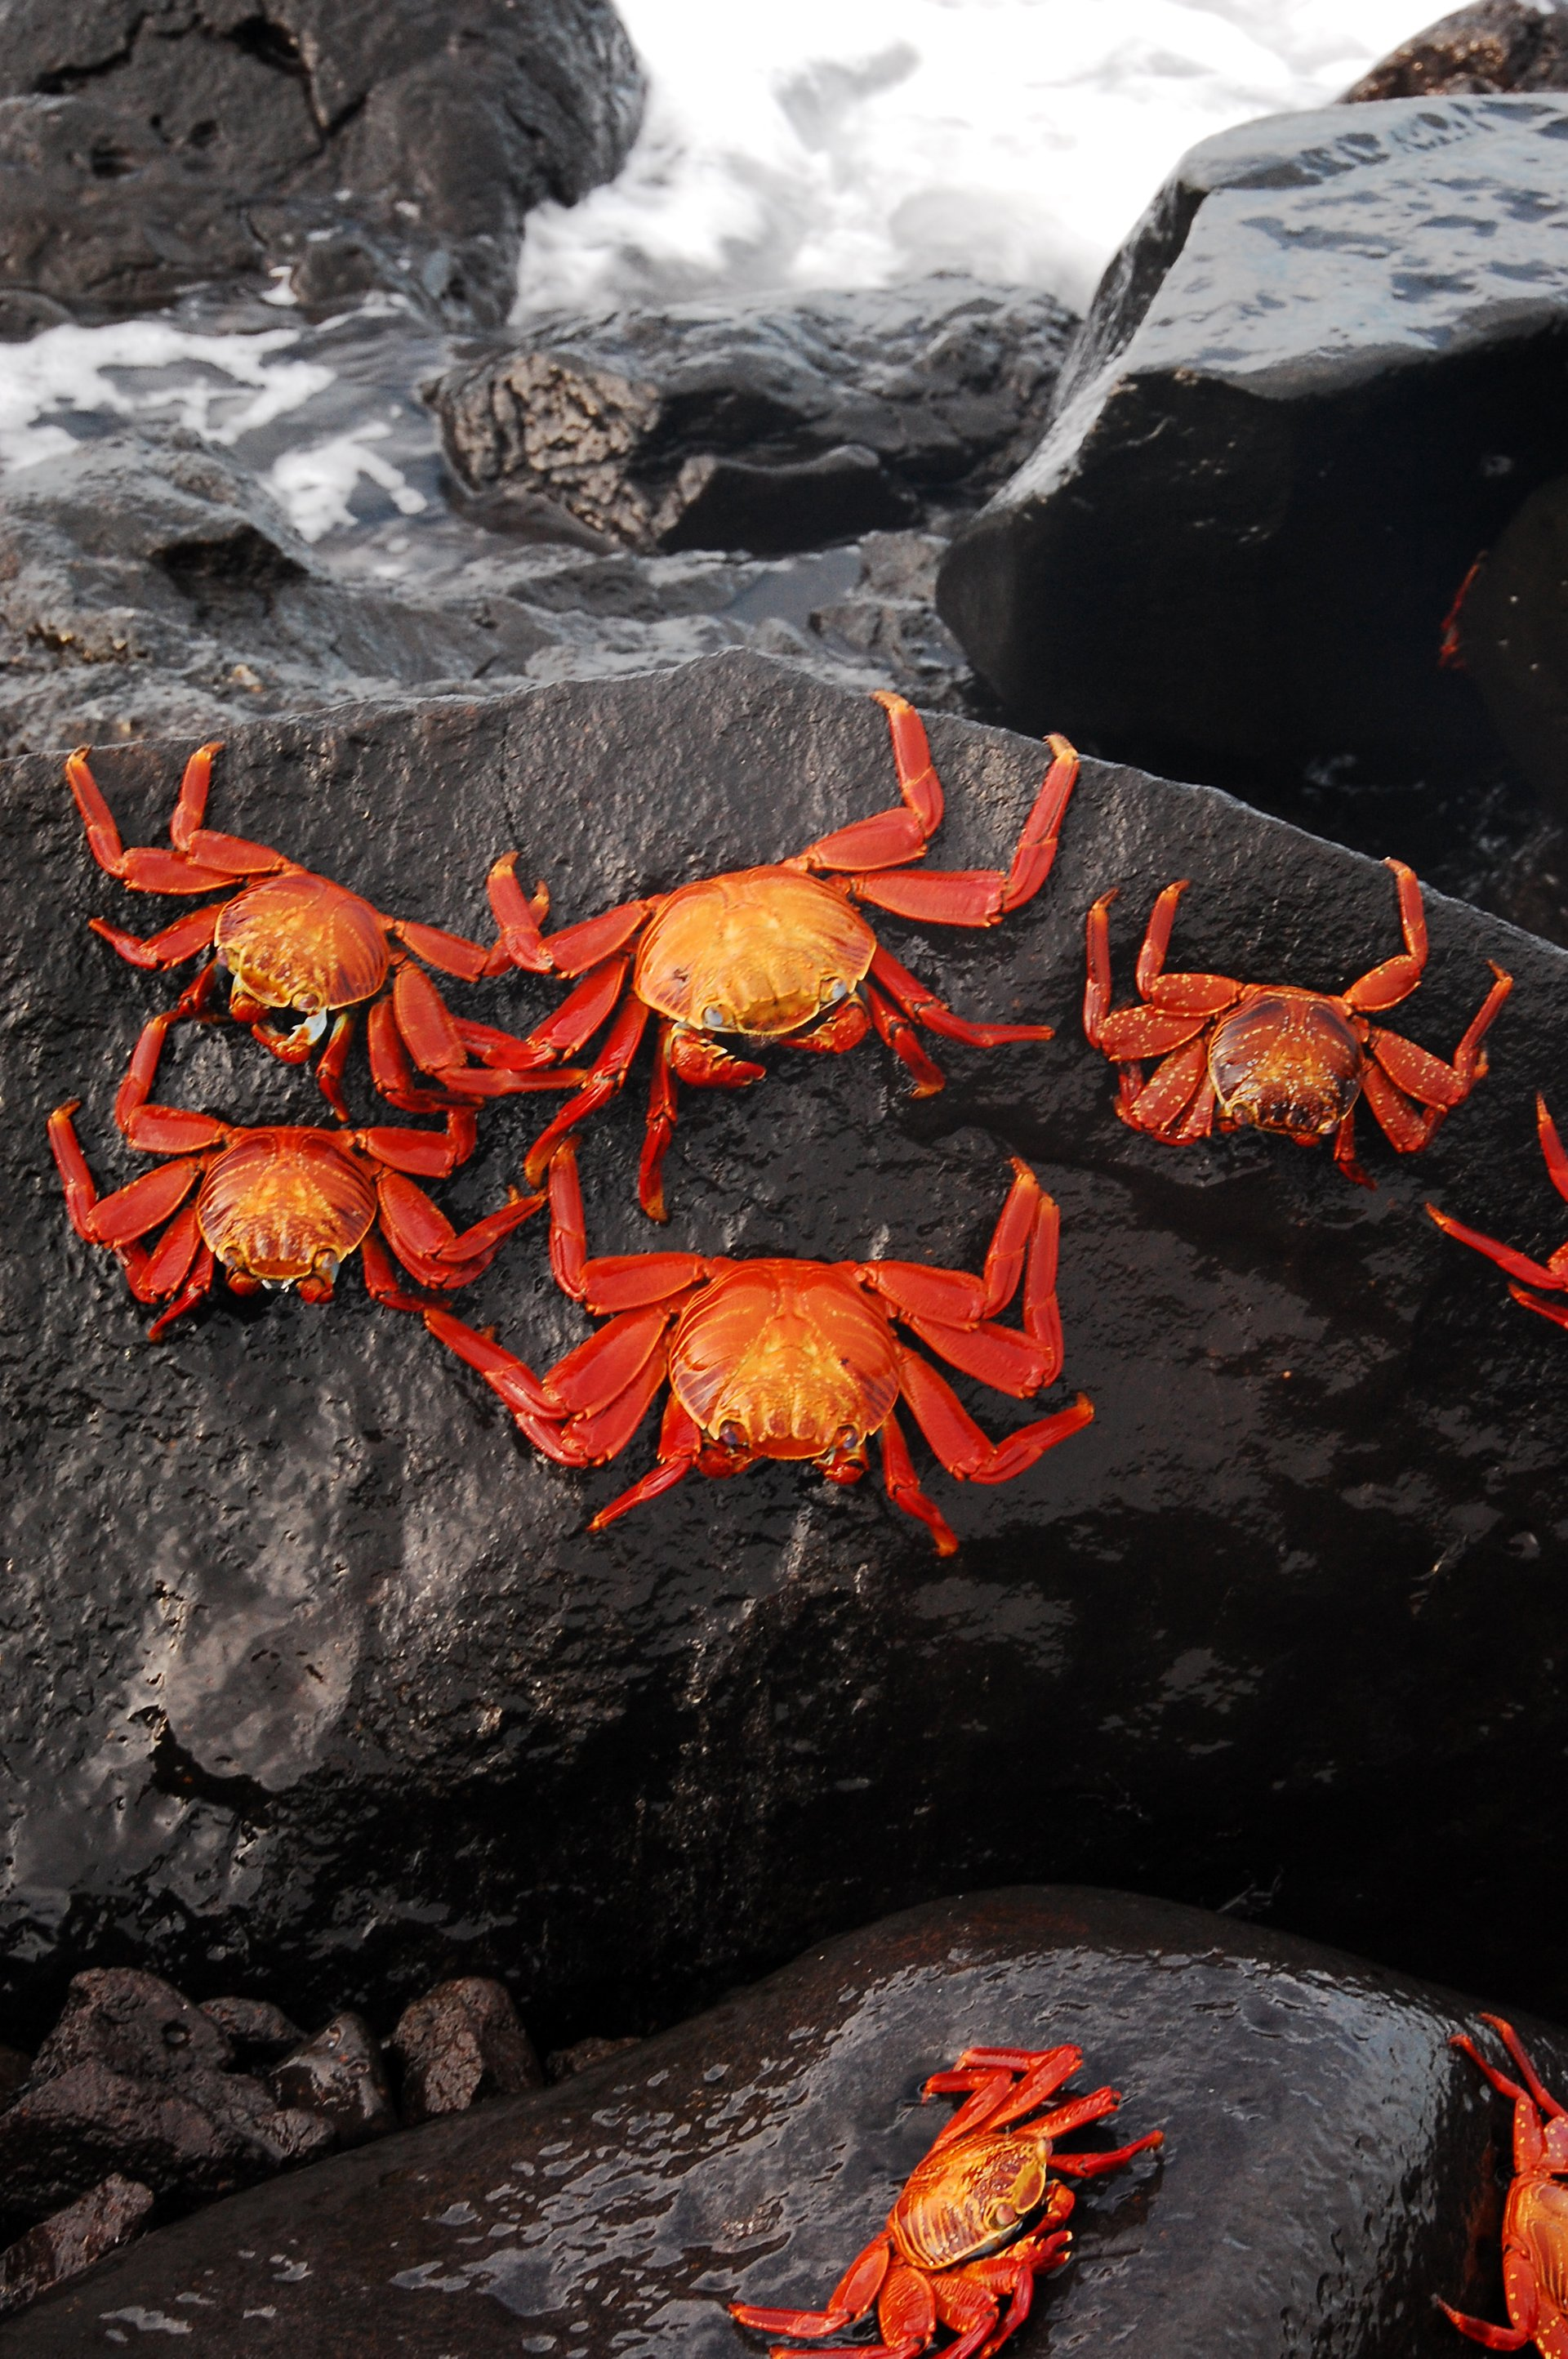 Red Rock Crab in Galapagos Islands - Best Season